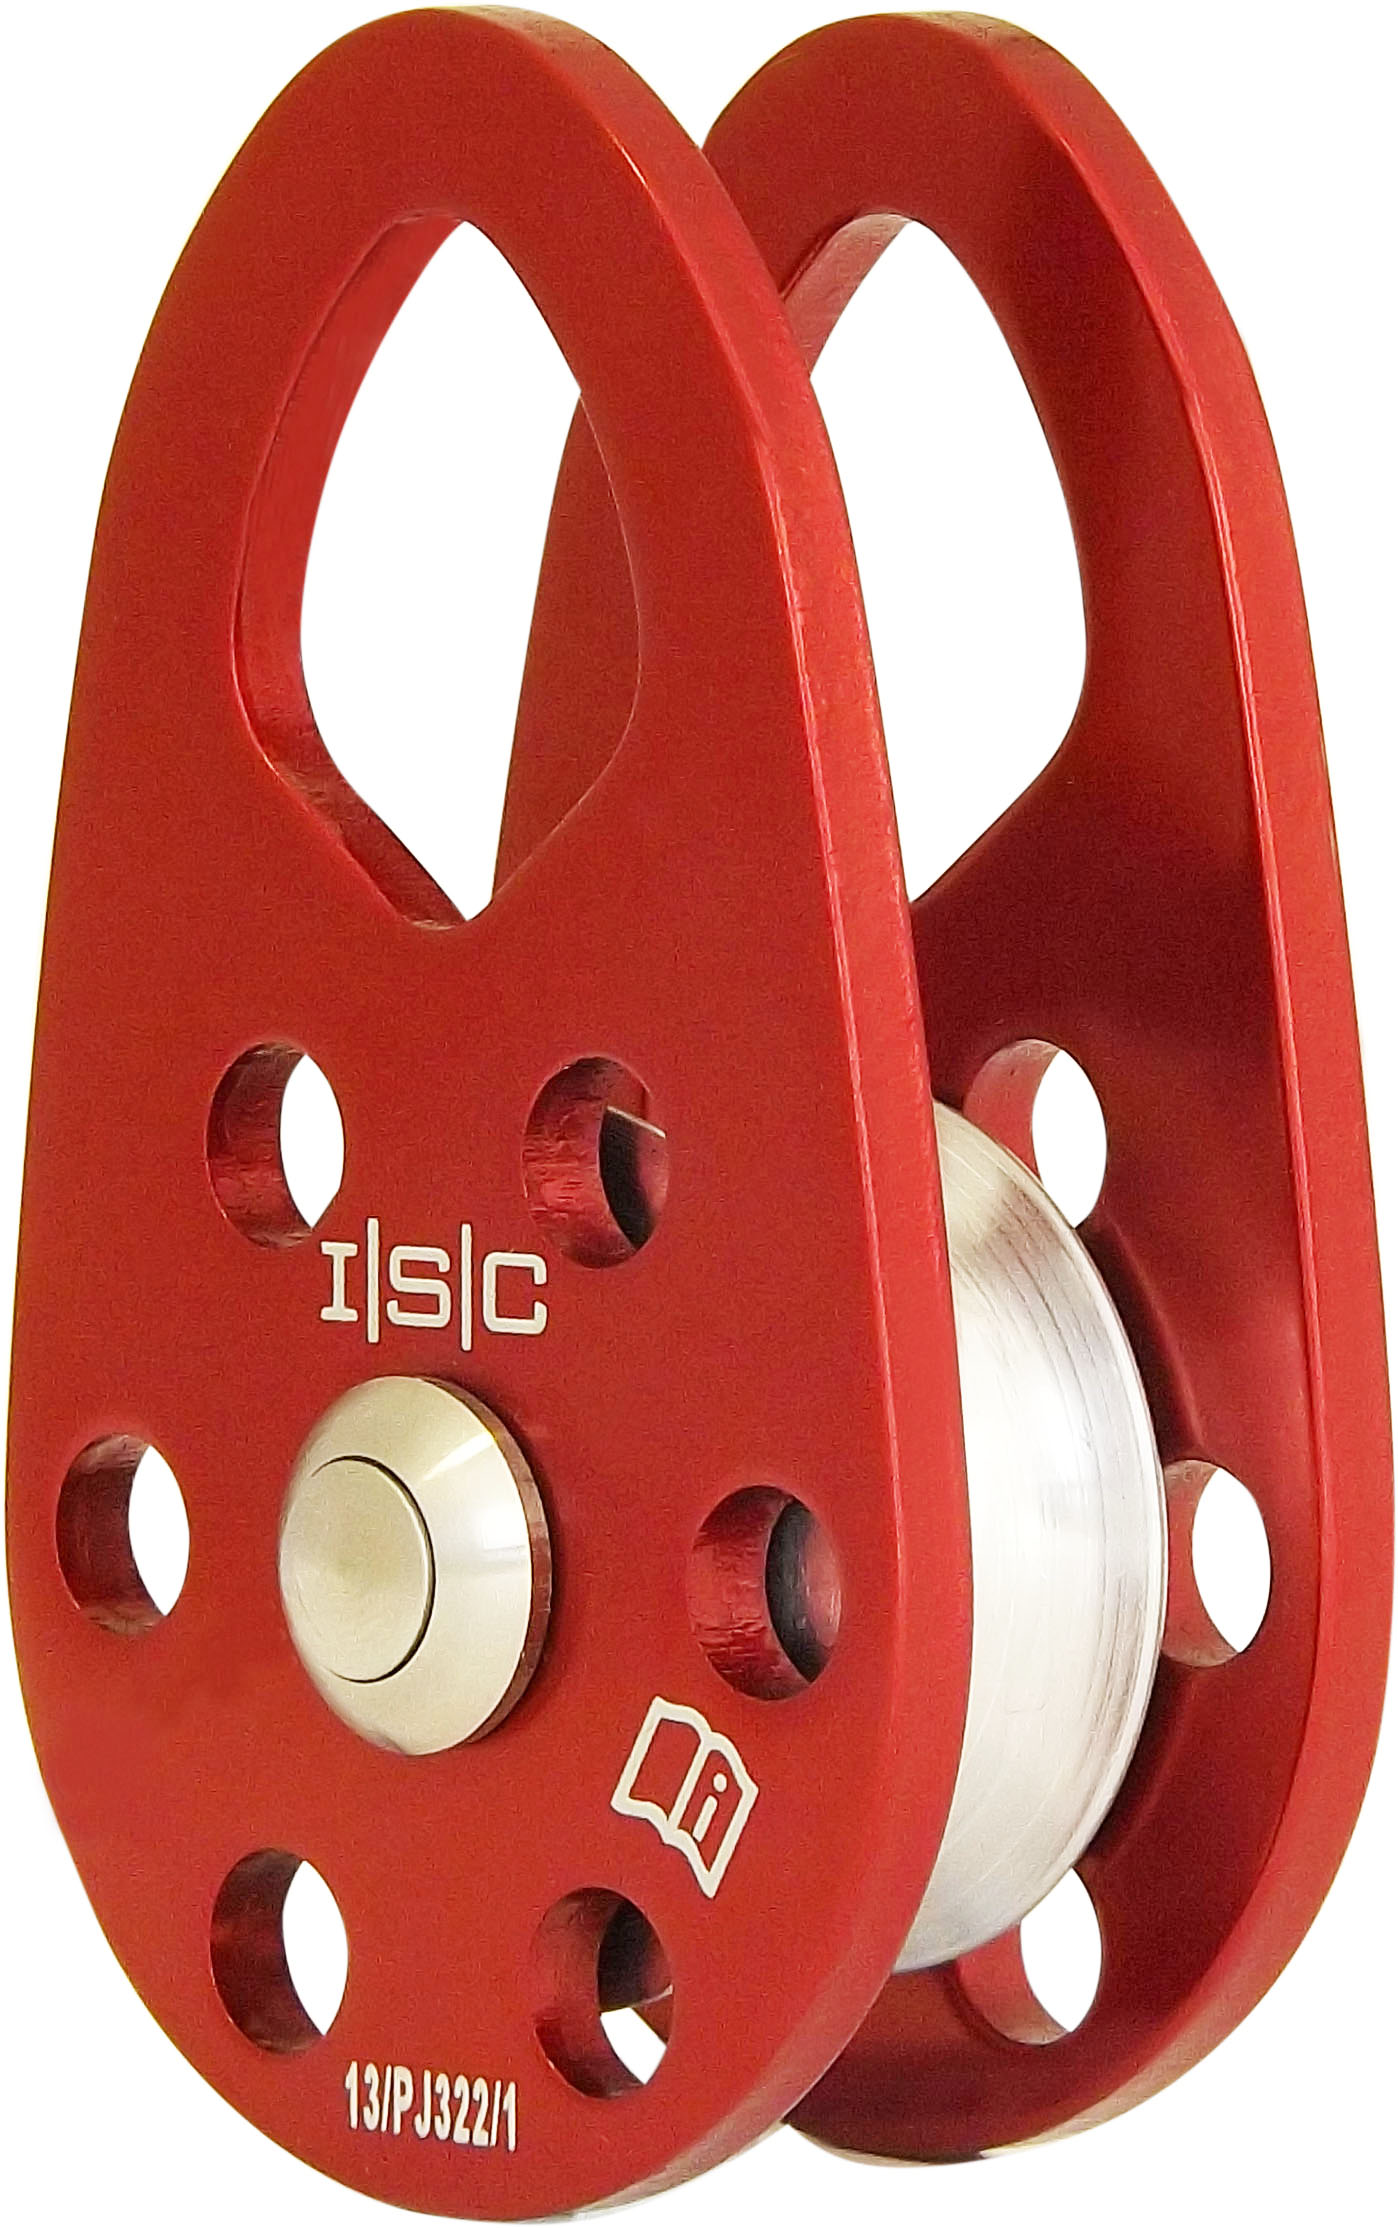 ISC – REPLACEMENT ROPE WRENCH KIT - SINGING TREE ROPE WRENCH PULLEY